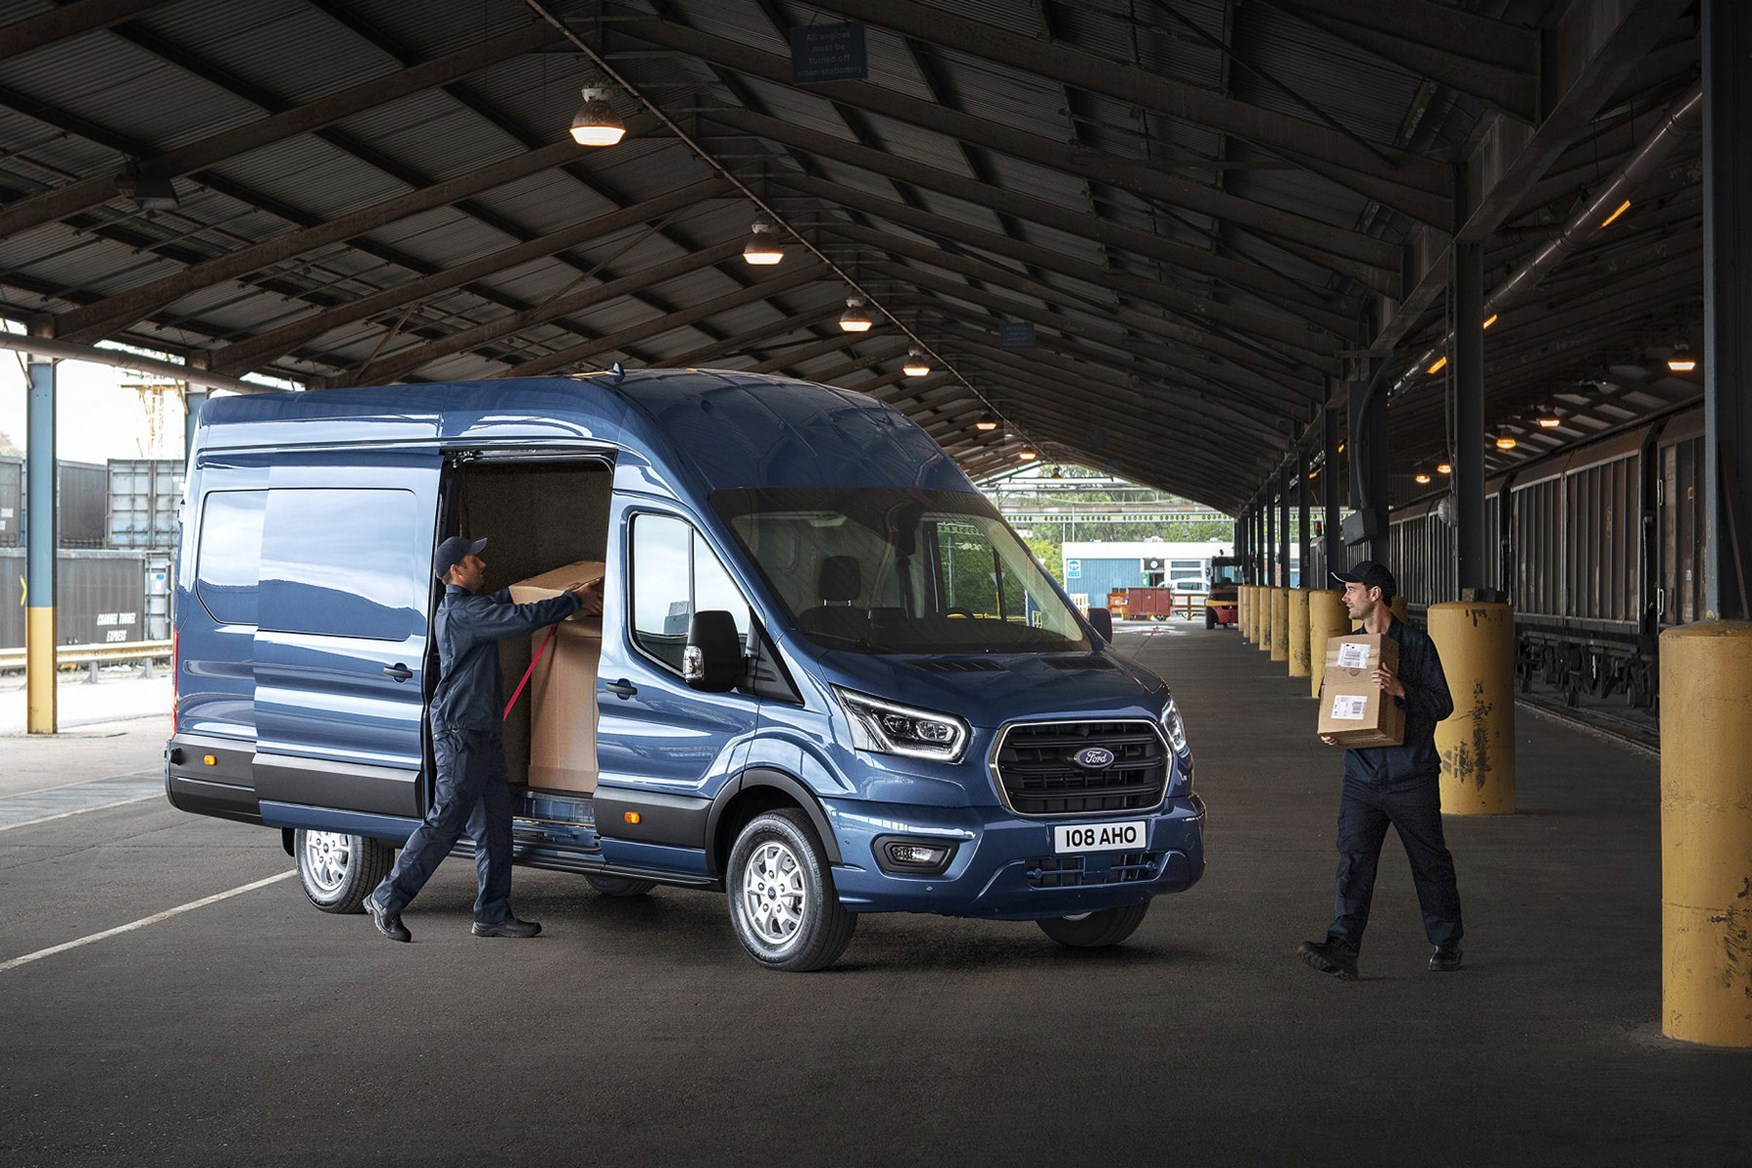 2019 Ford Transit Facelift Front View Being Loaded